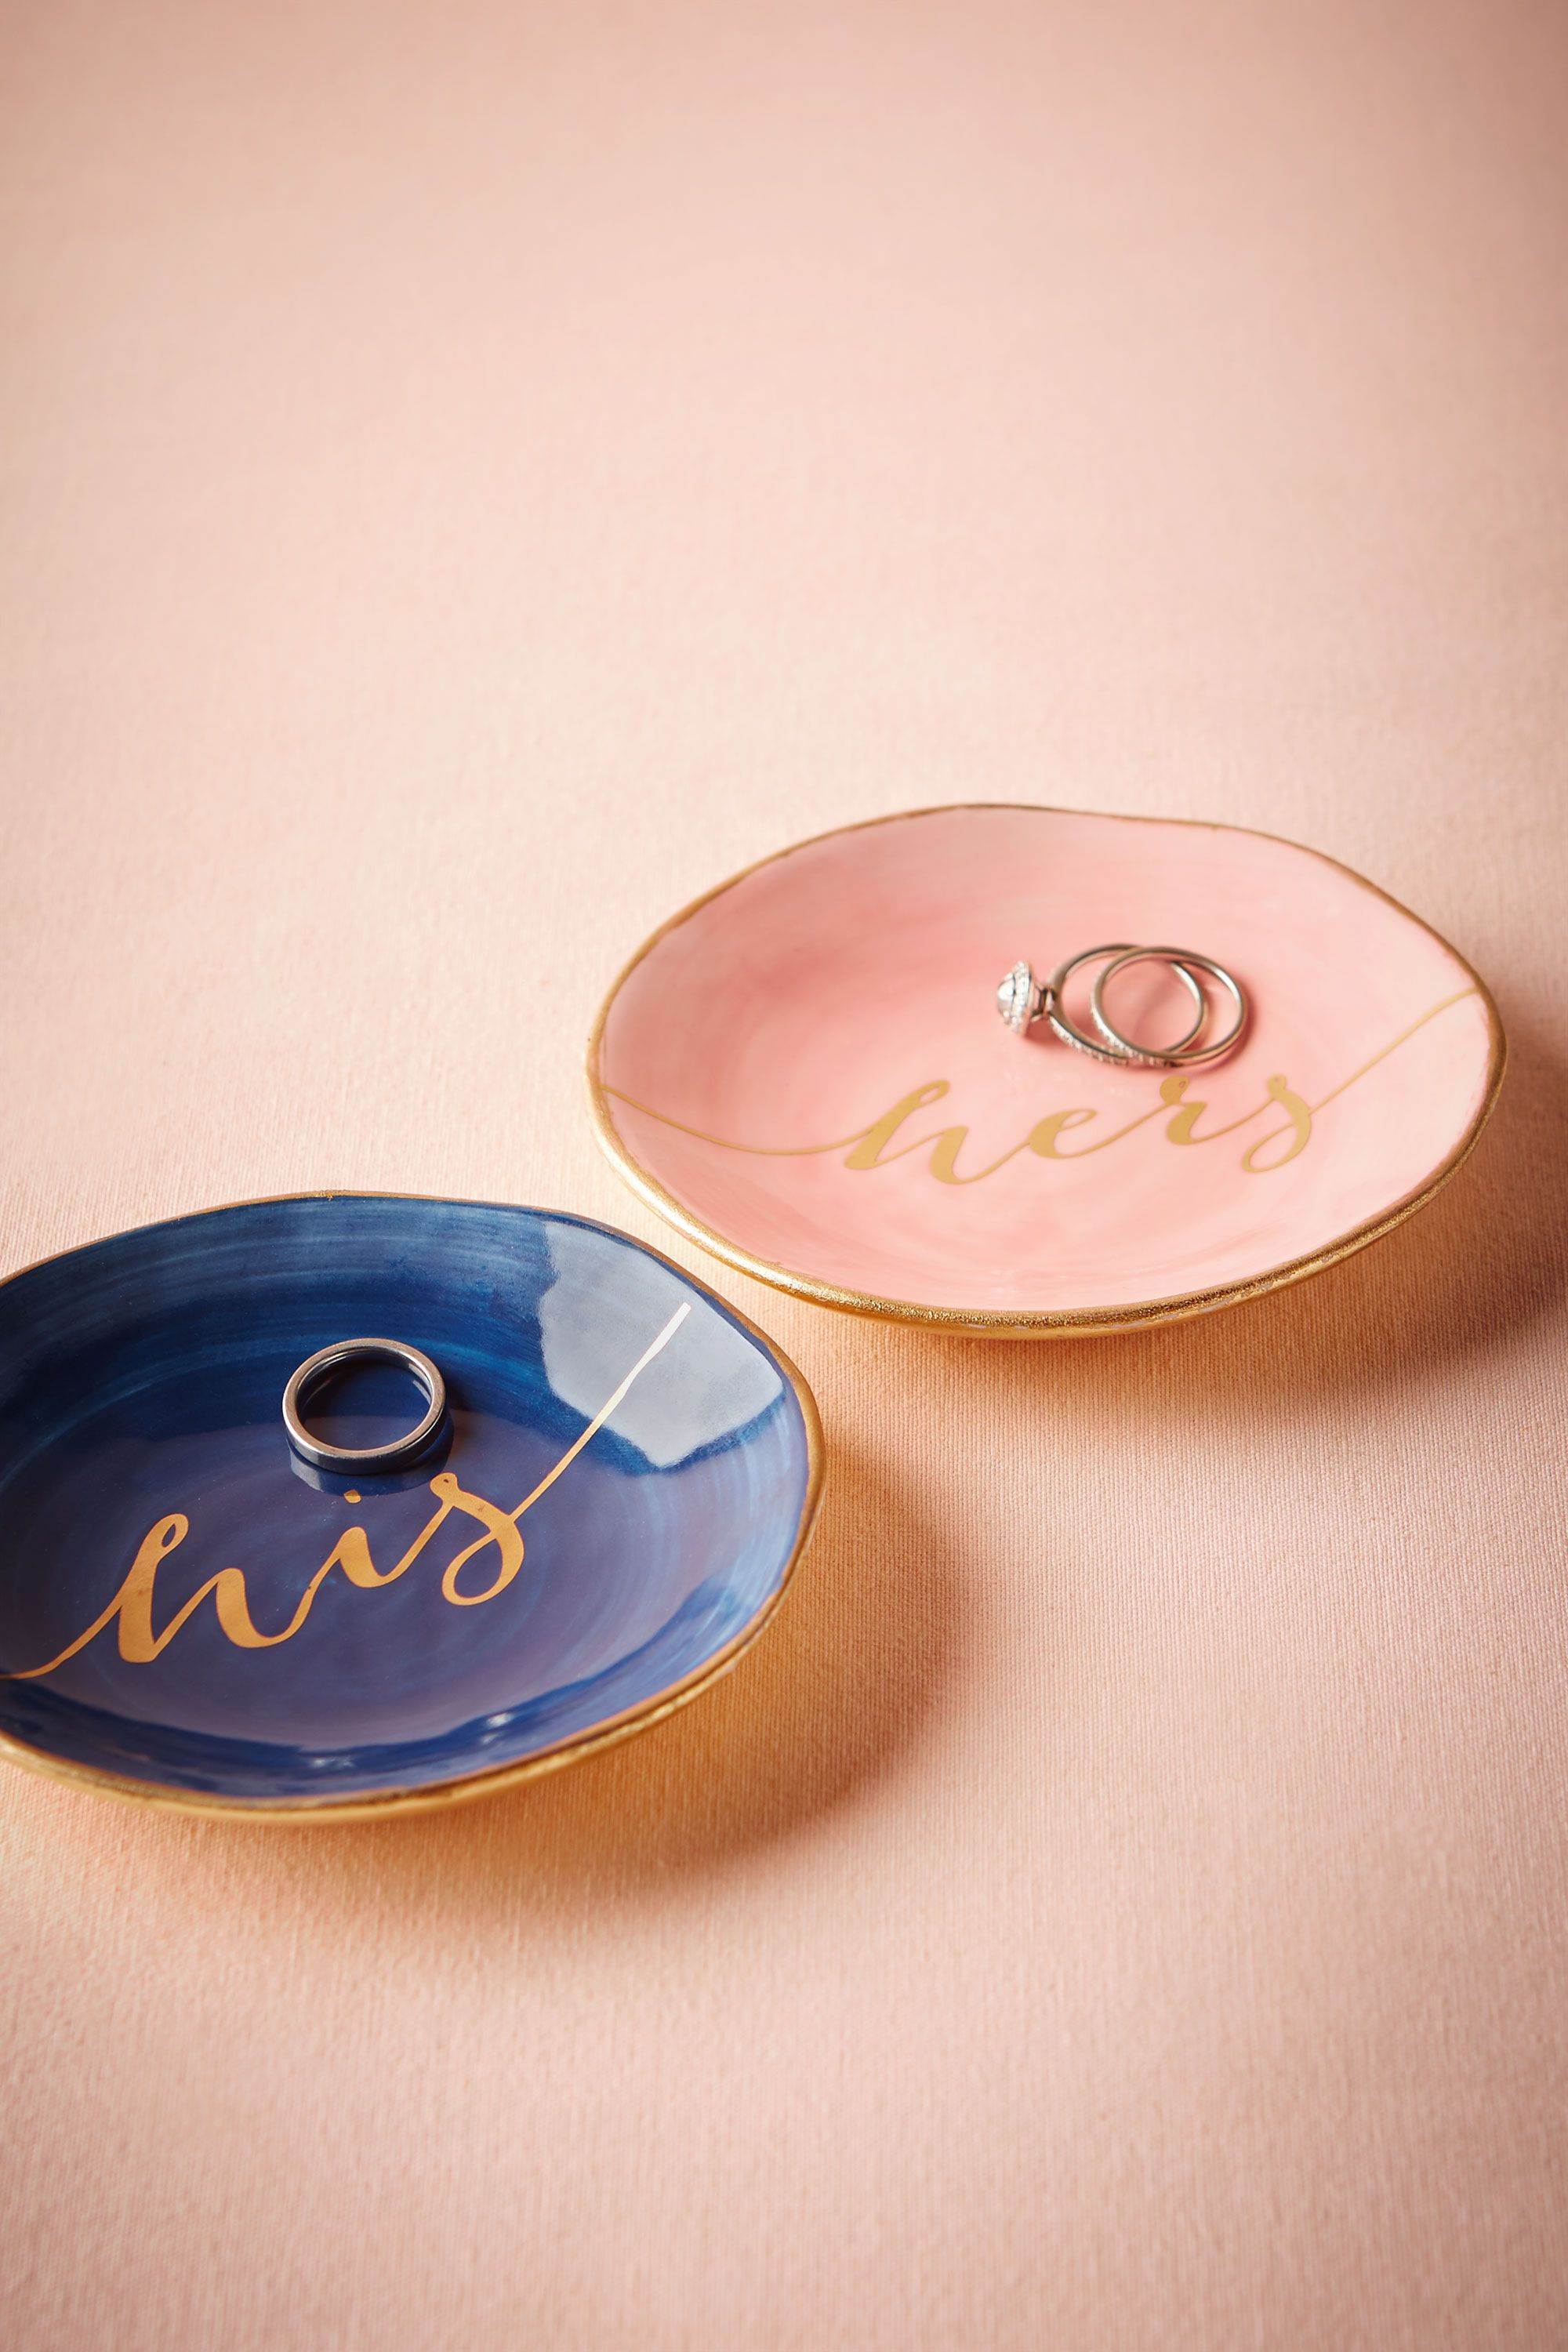 His & Hers Ring Dishes (2)